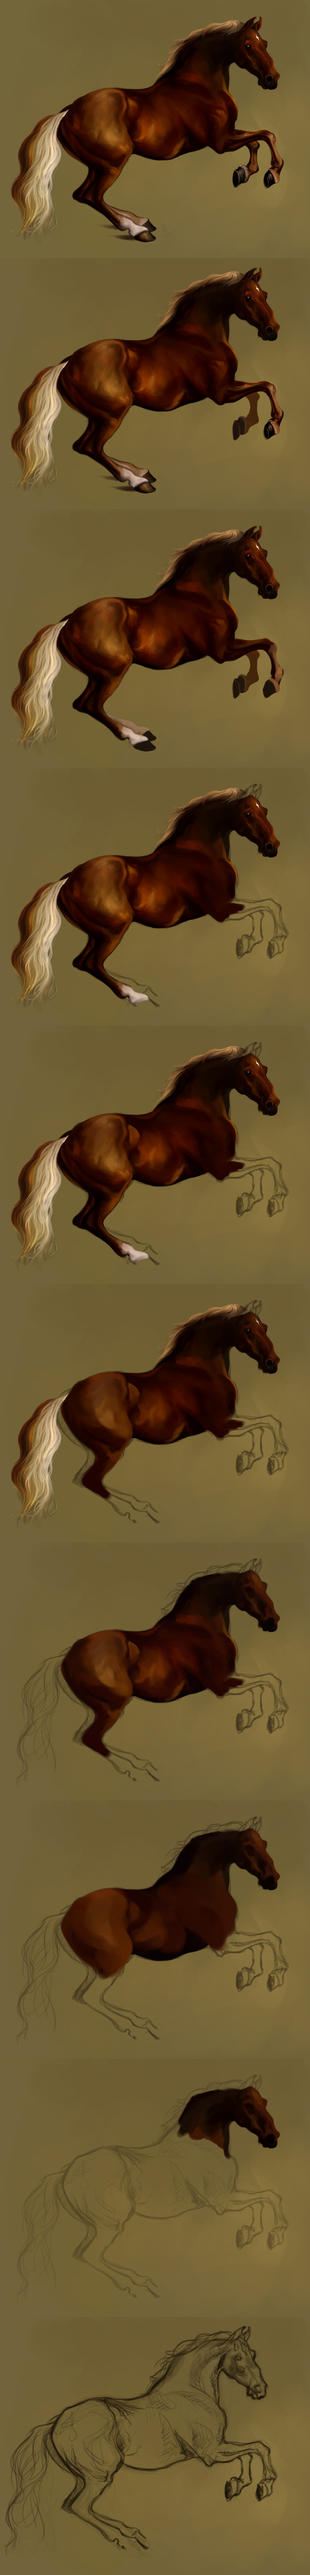 Making of Whistlejacket by Elsouille